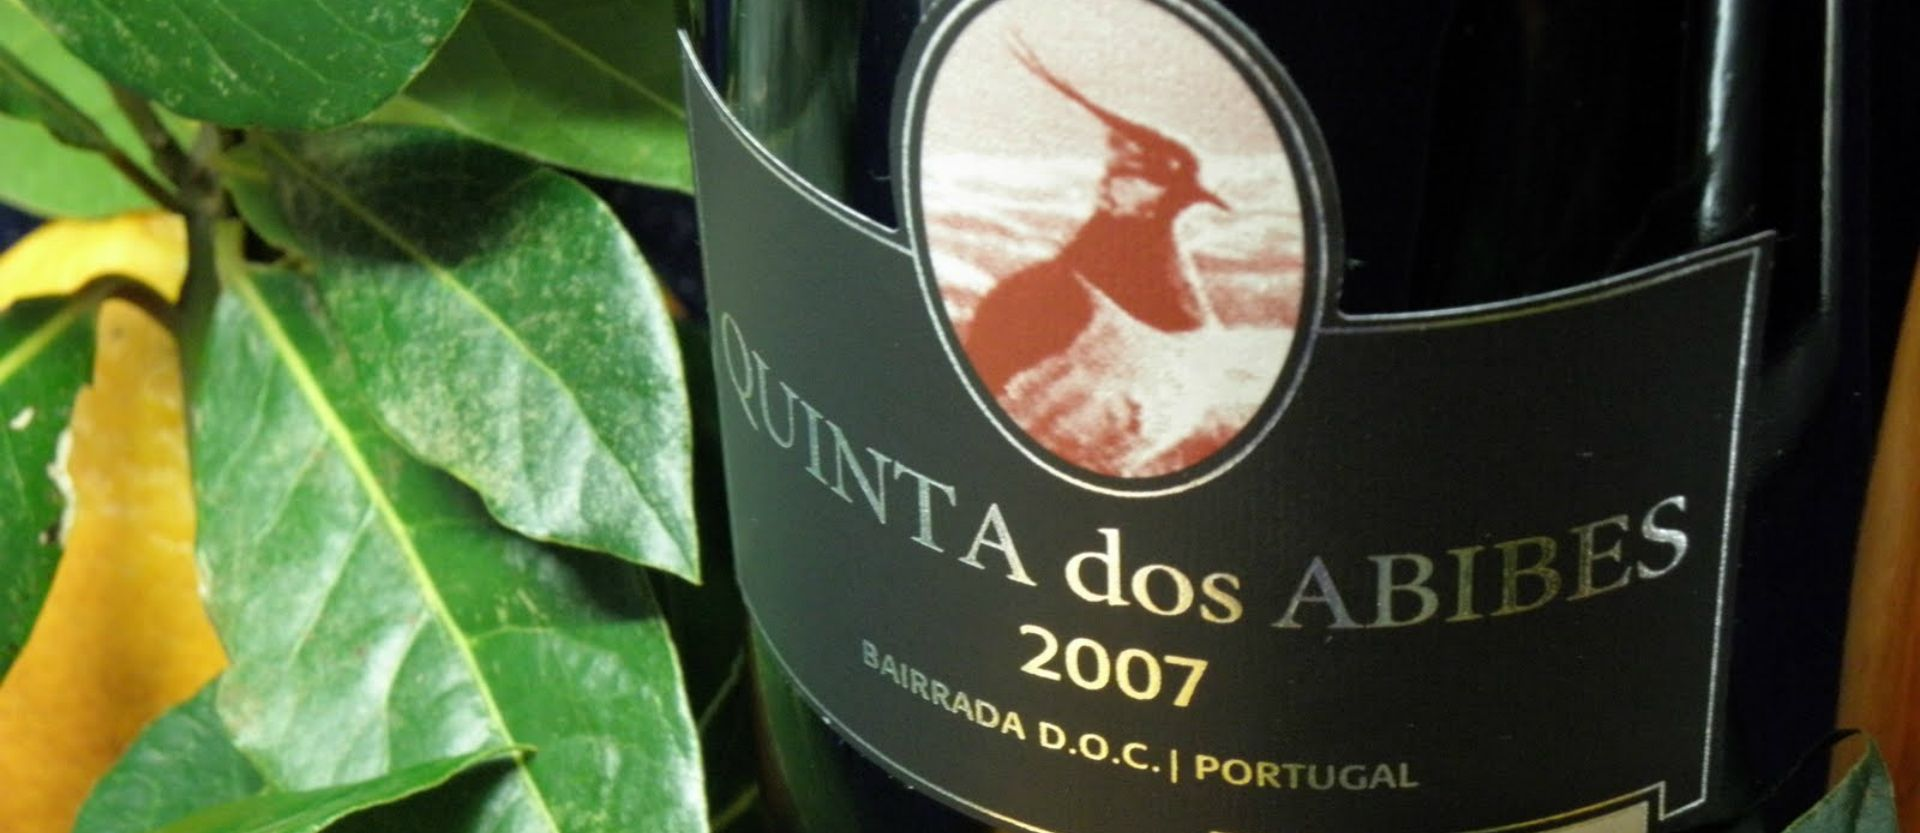 With an intense garnet color and abundant violet tones, Quinta dos Abibes Sublime Red 2010 has a nuance of floral notes, dried black plums, raisins and macerated forest fruits  #wine #wines #winesofPortugal #portuguesewines #gastronomy #QuintadosAbibes